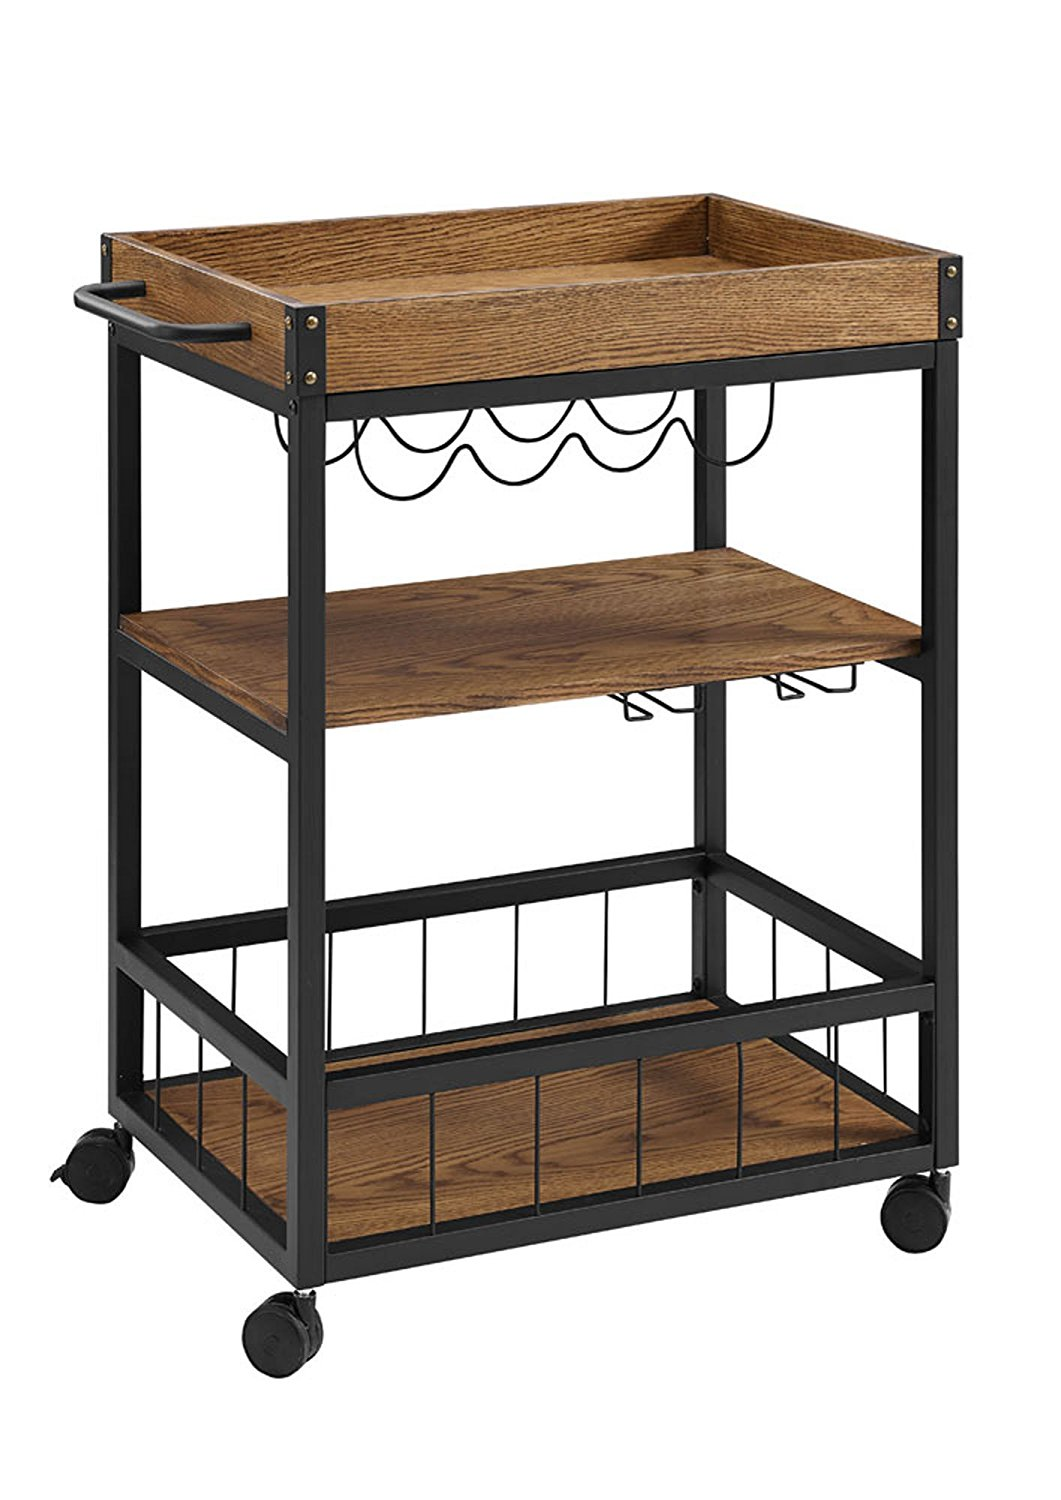 Rustic Industrial Style Three Shelves Kitchen Cart/ Glass Cup Racks For  Ample Space - Buy Display Racks For Kitchen,Kitchen Storage Cart,3 Shelves  For ...